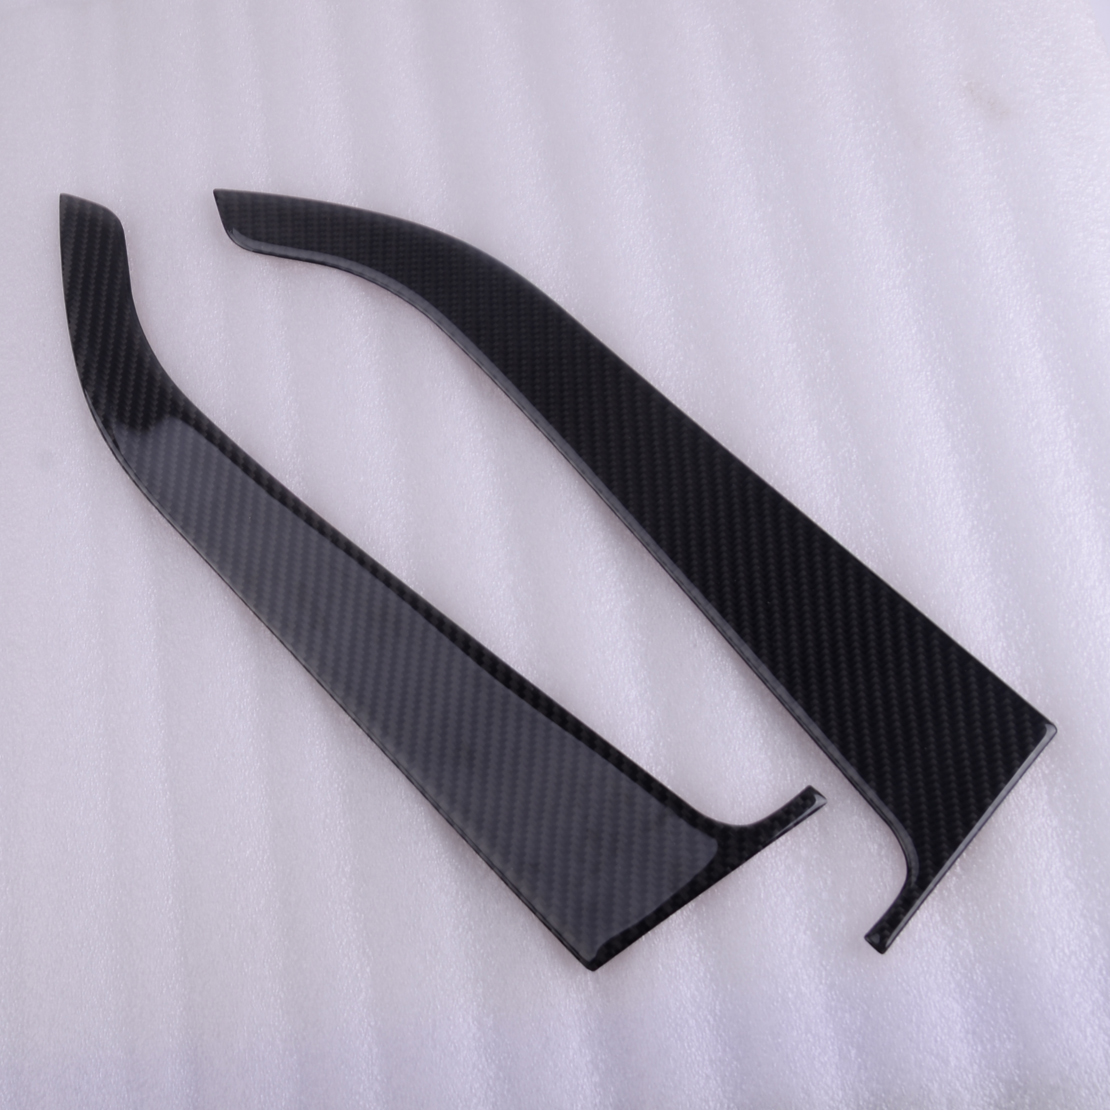 CITALL 2pcs Carbon Fiber Interior Front Armrest Door Handle Panel Cover Trim Styling Fit For Ford